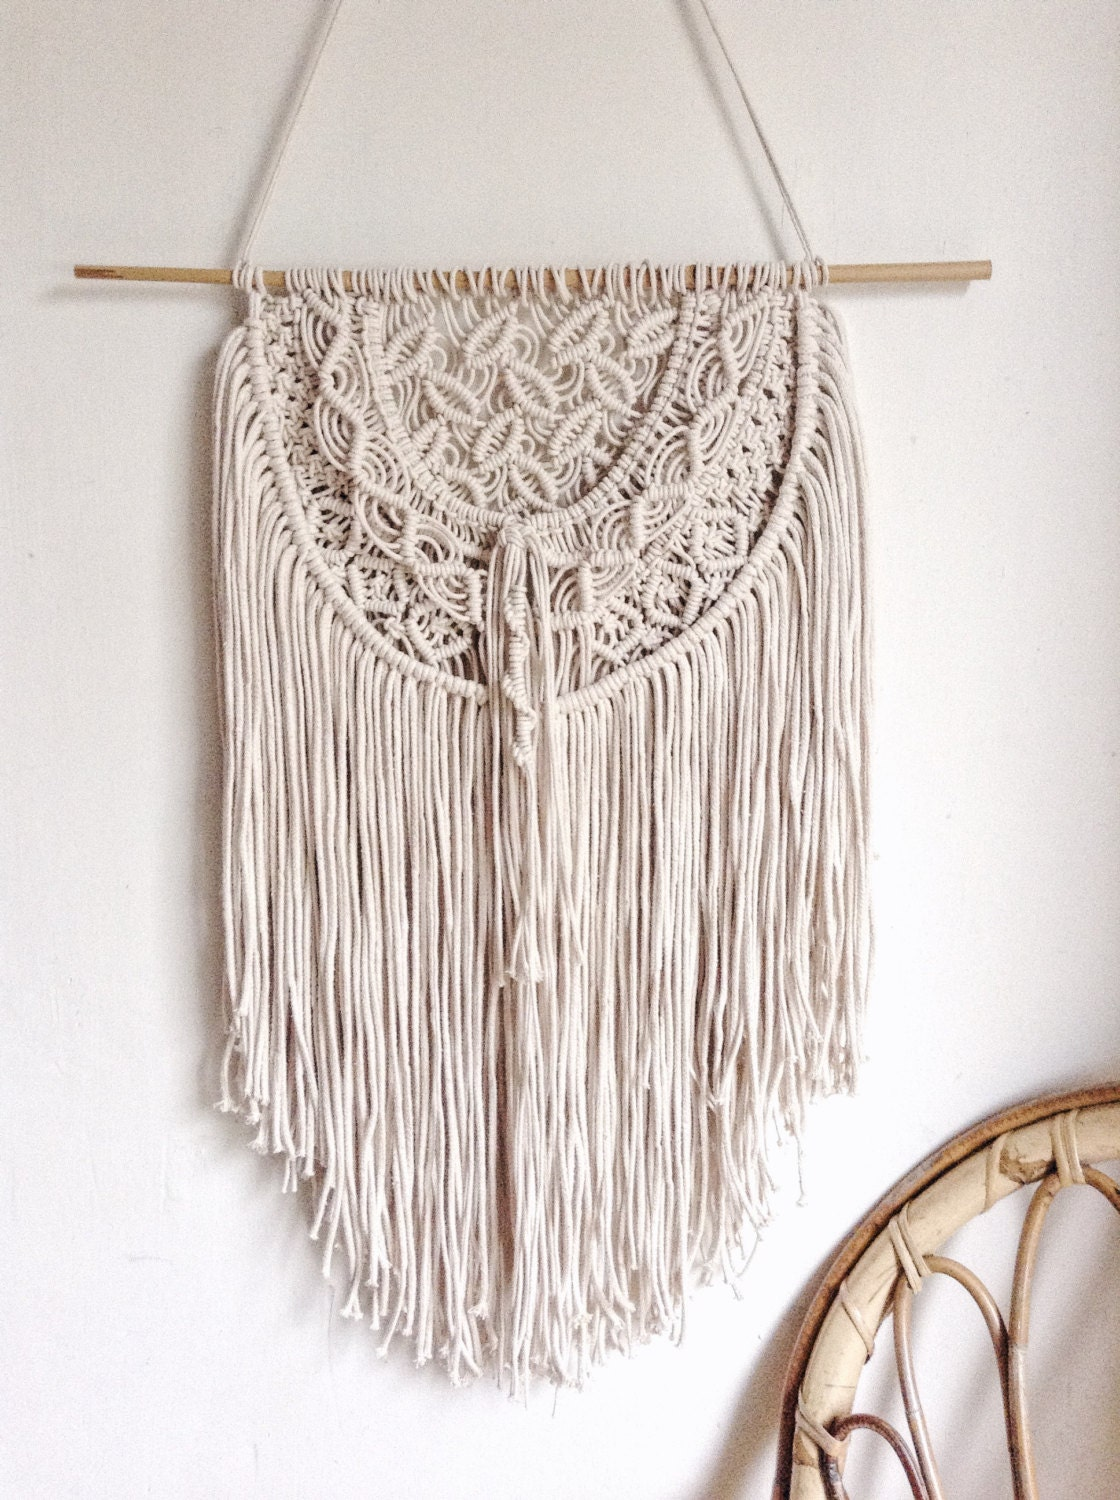 Macrame wall hanging macrame wall decor wedding decor for Wall hanging